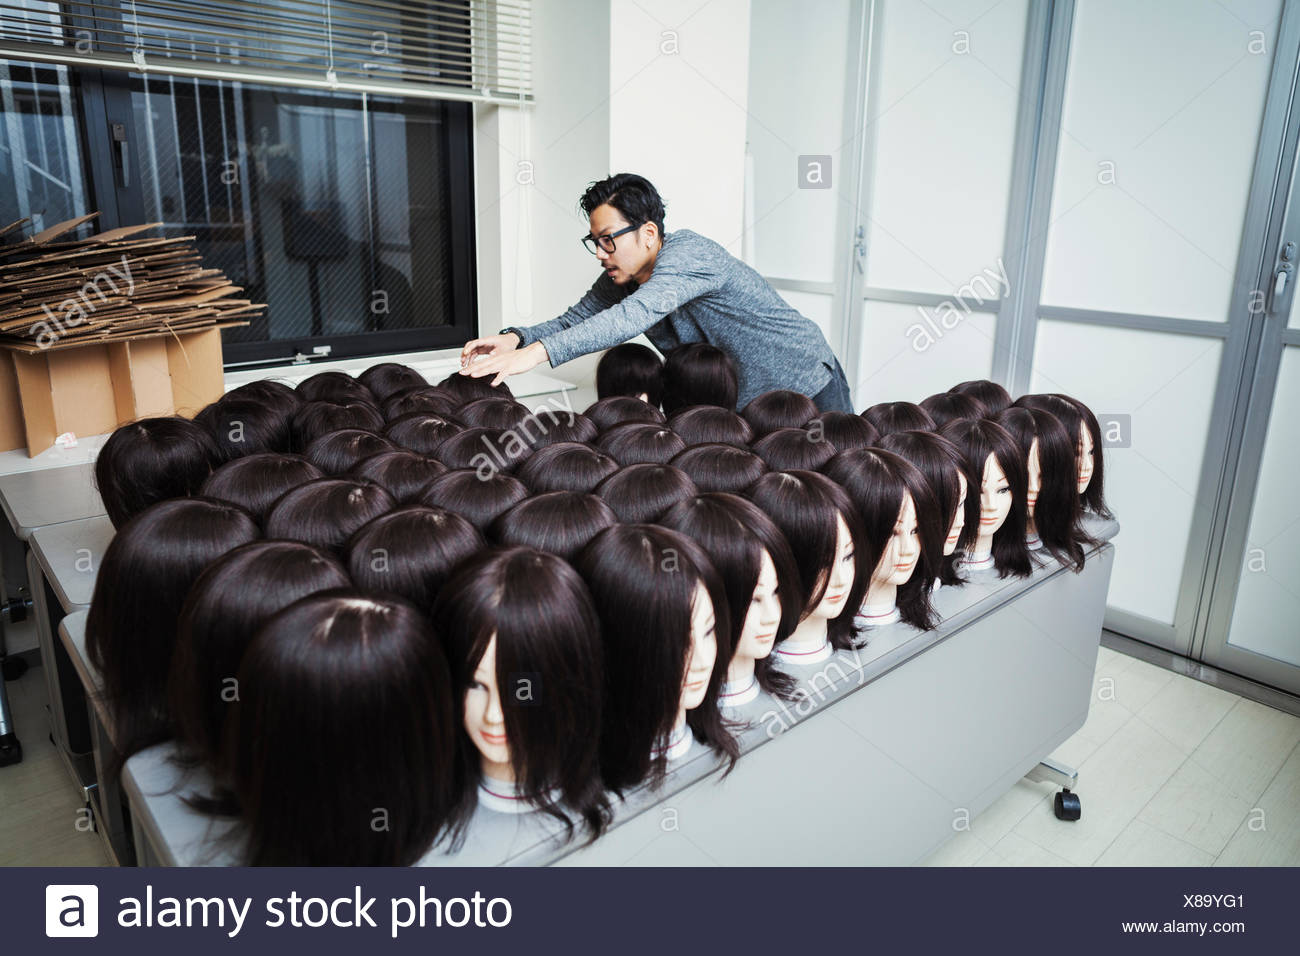 Bearded man wearing glasses standing indoors, arranging mannequin heads with brown wigs. - Stock Image